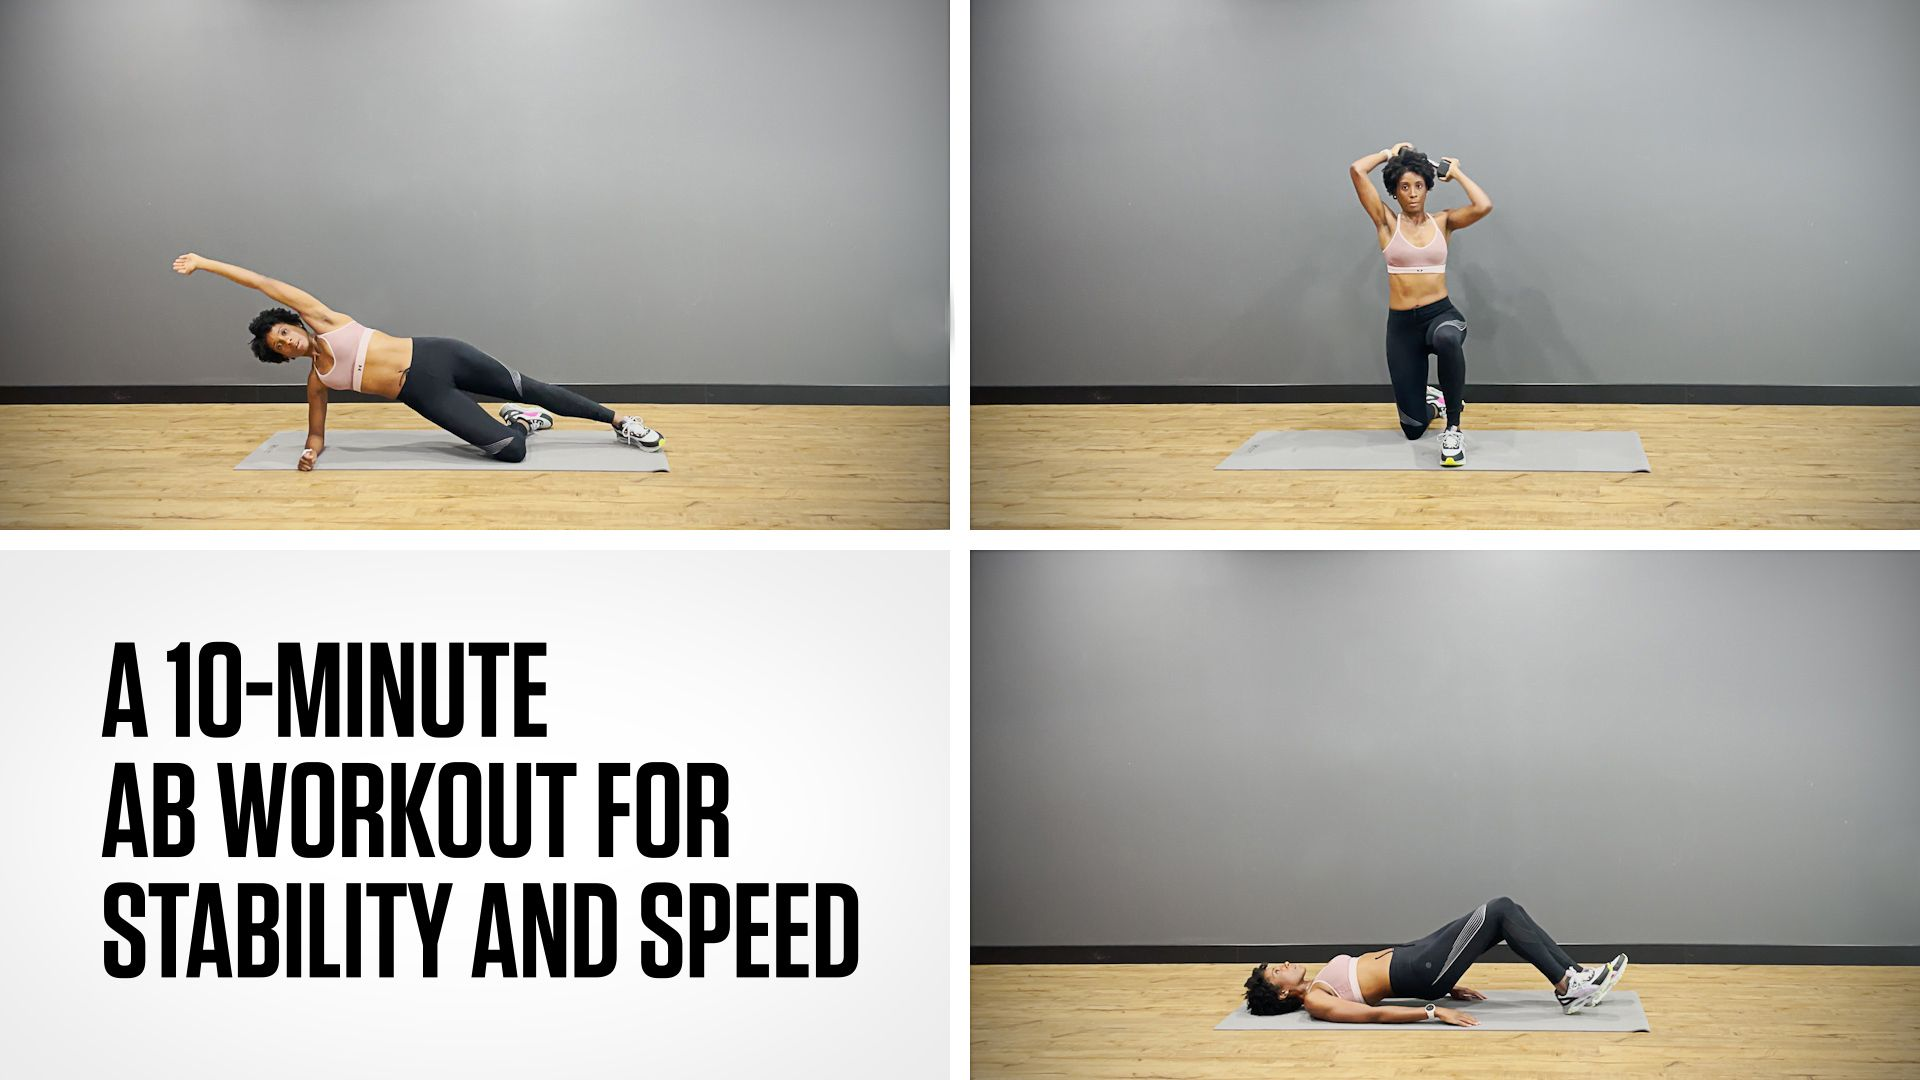 A 10-Minute Abs Workout for Stability and Speed